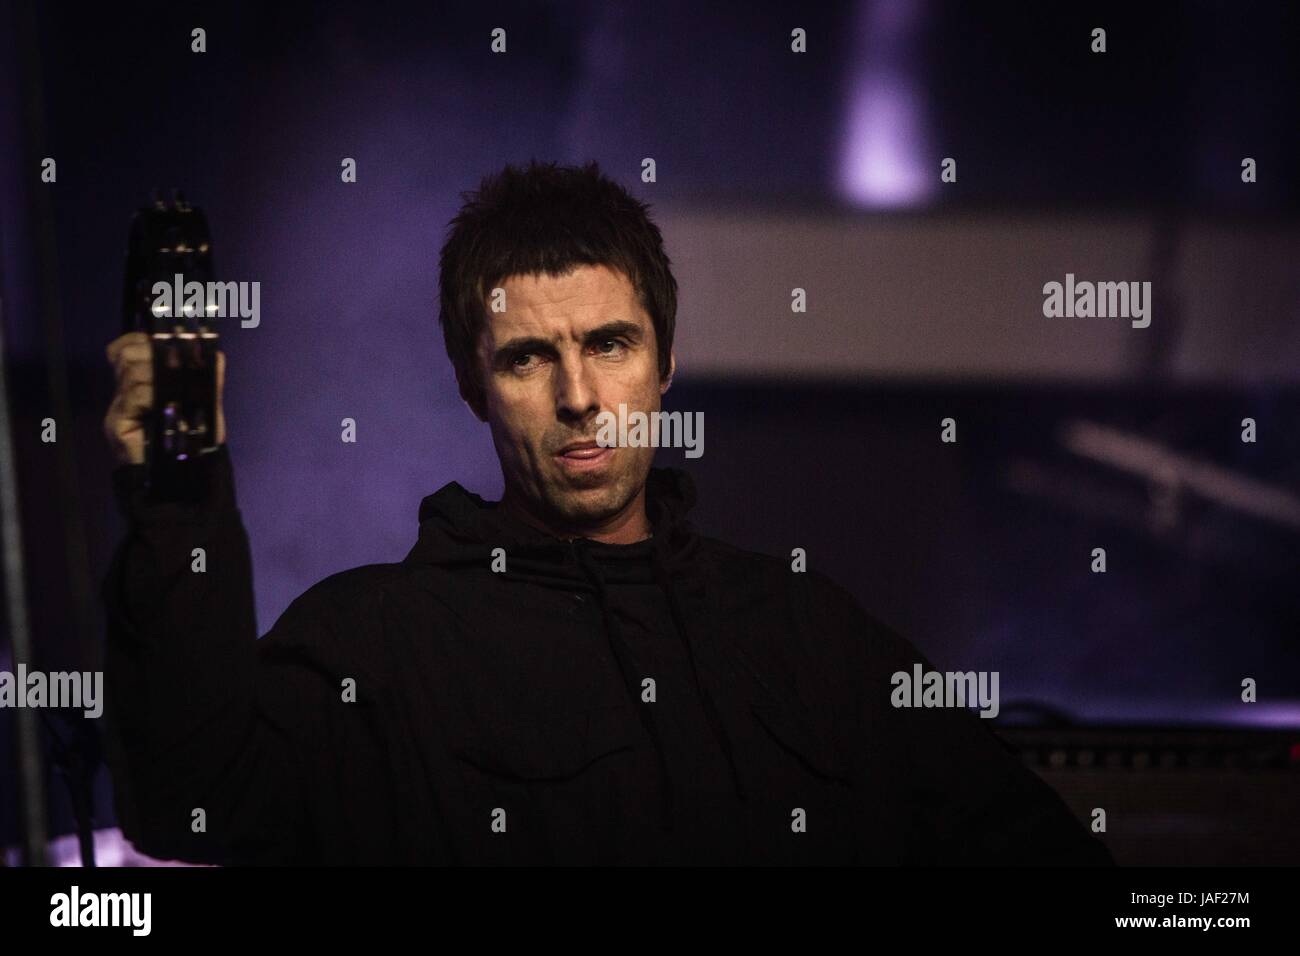 Landgraaf, Netherlands 5th june 2017 Liam Gallagher perform live at Pinkpop Festival 2017 © Roberto Finizio/ - Stock Image